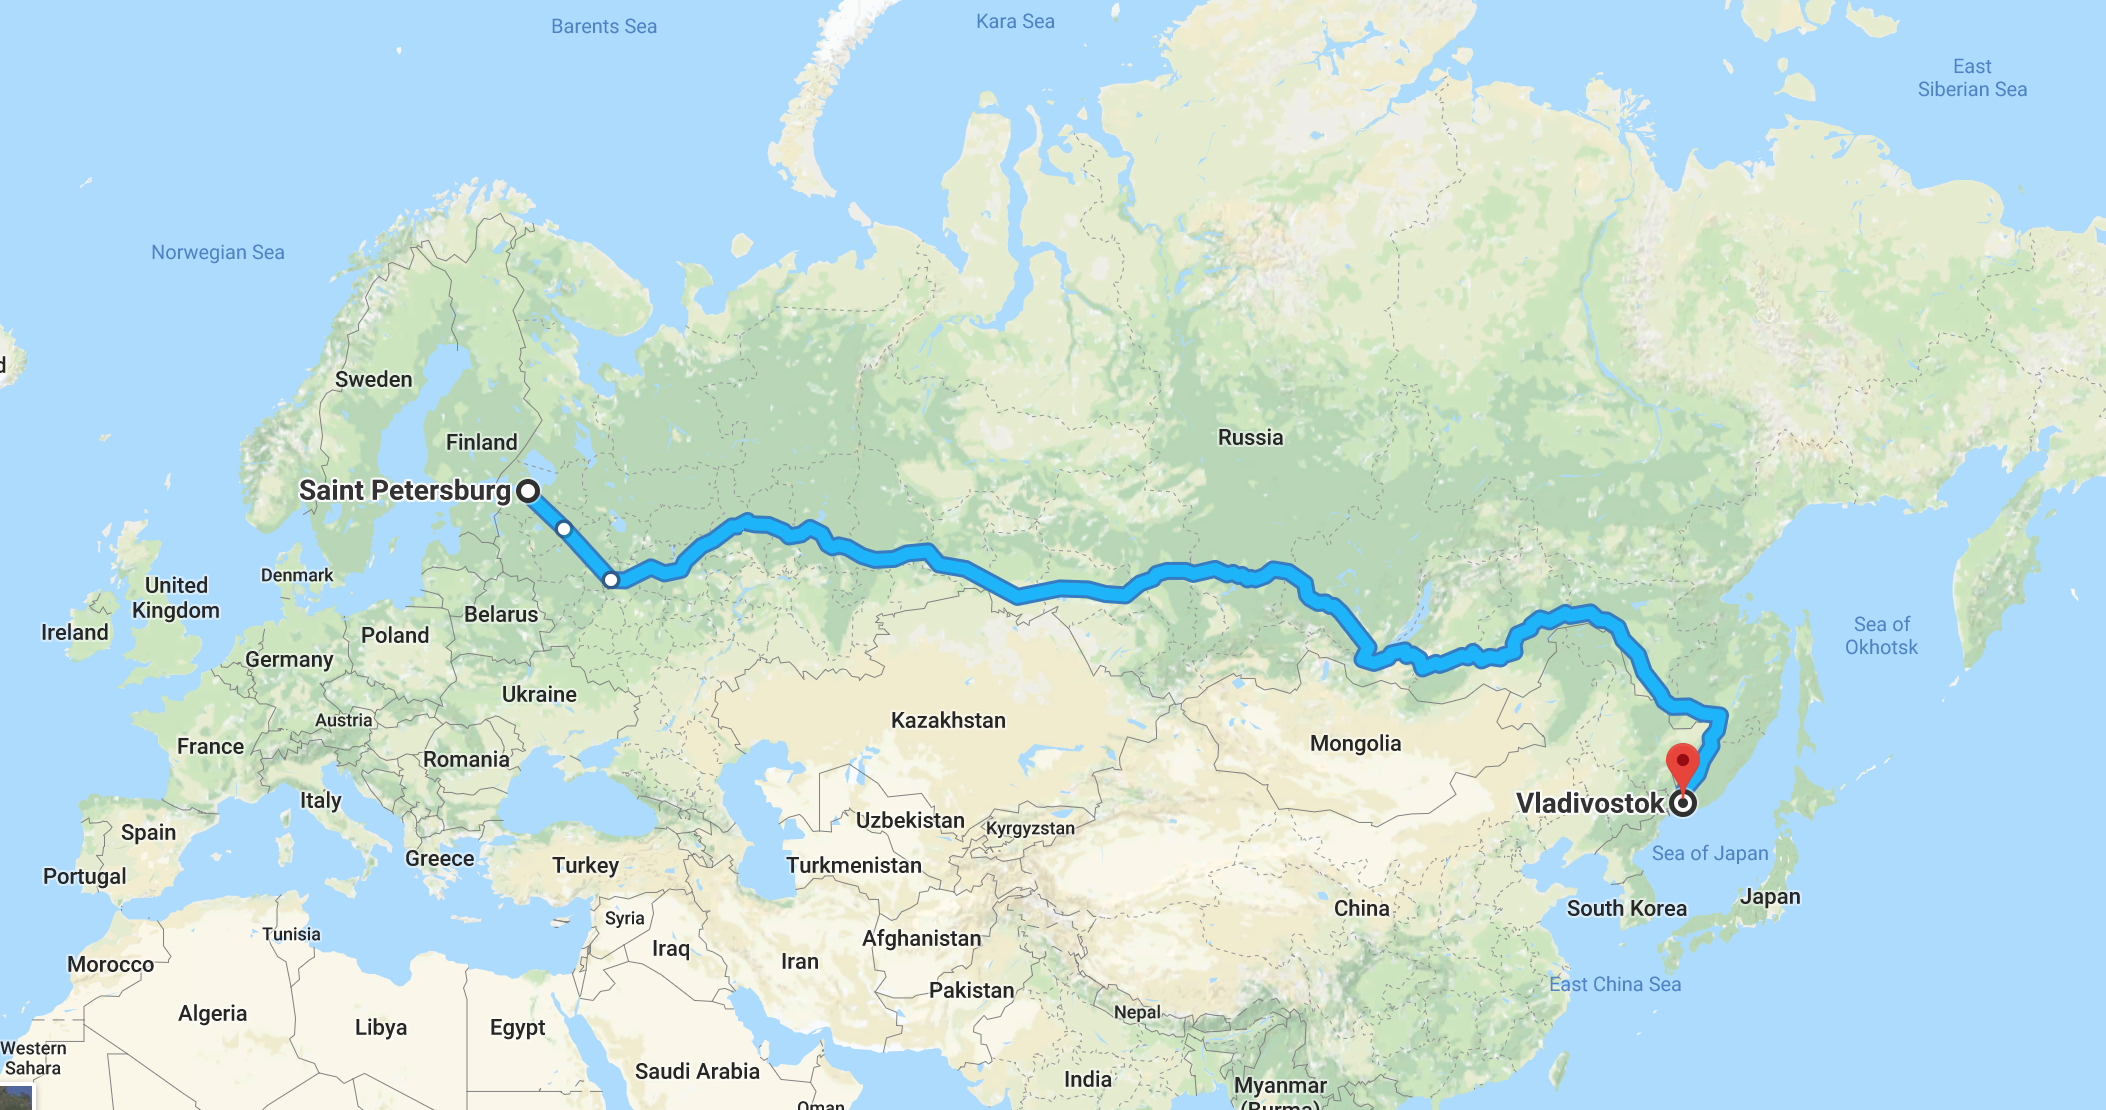 The route of my trip along the Trans-Siberian Railroad, from St Petersburg to Vladivostok.